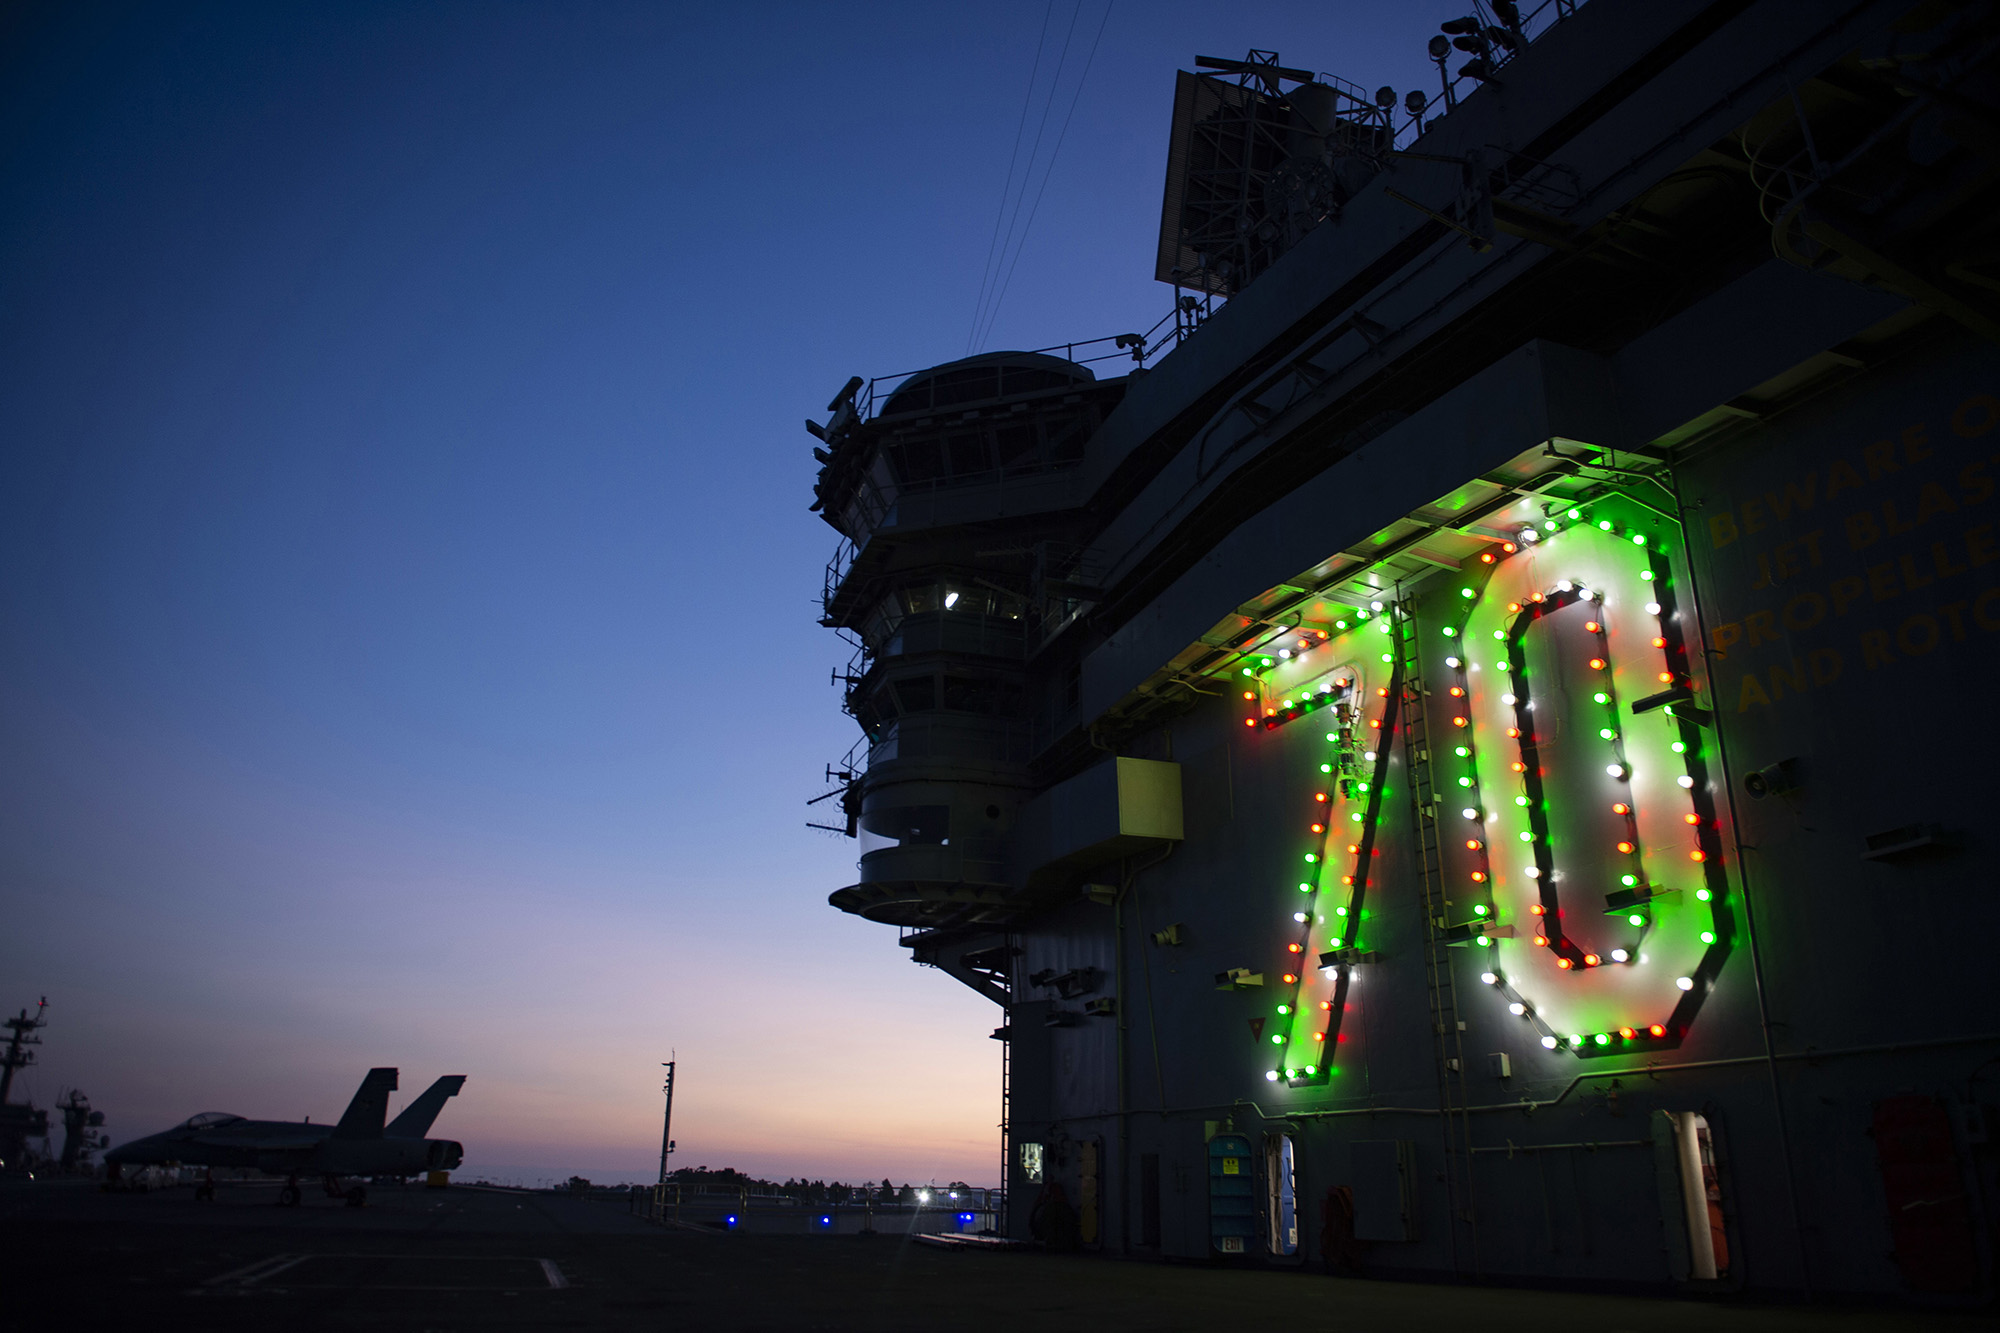 The Nimitz-class nuclear aircraft carrier USS Carl Vinson (CVN 70) displays holiday lights on the island in celebration of the holiday season on Nov. 26, 2020, in San Diego. (MC2 Matthew A. Fink/Navy)